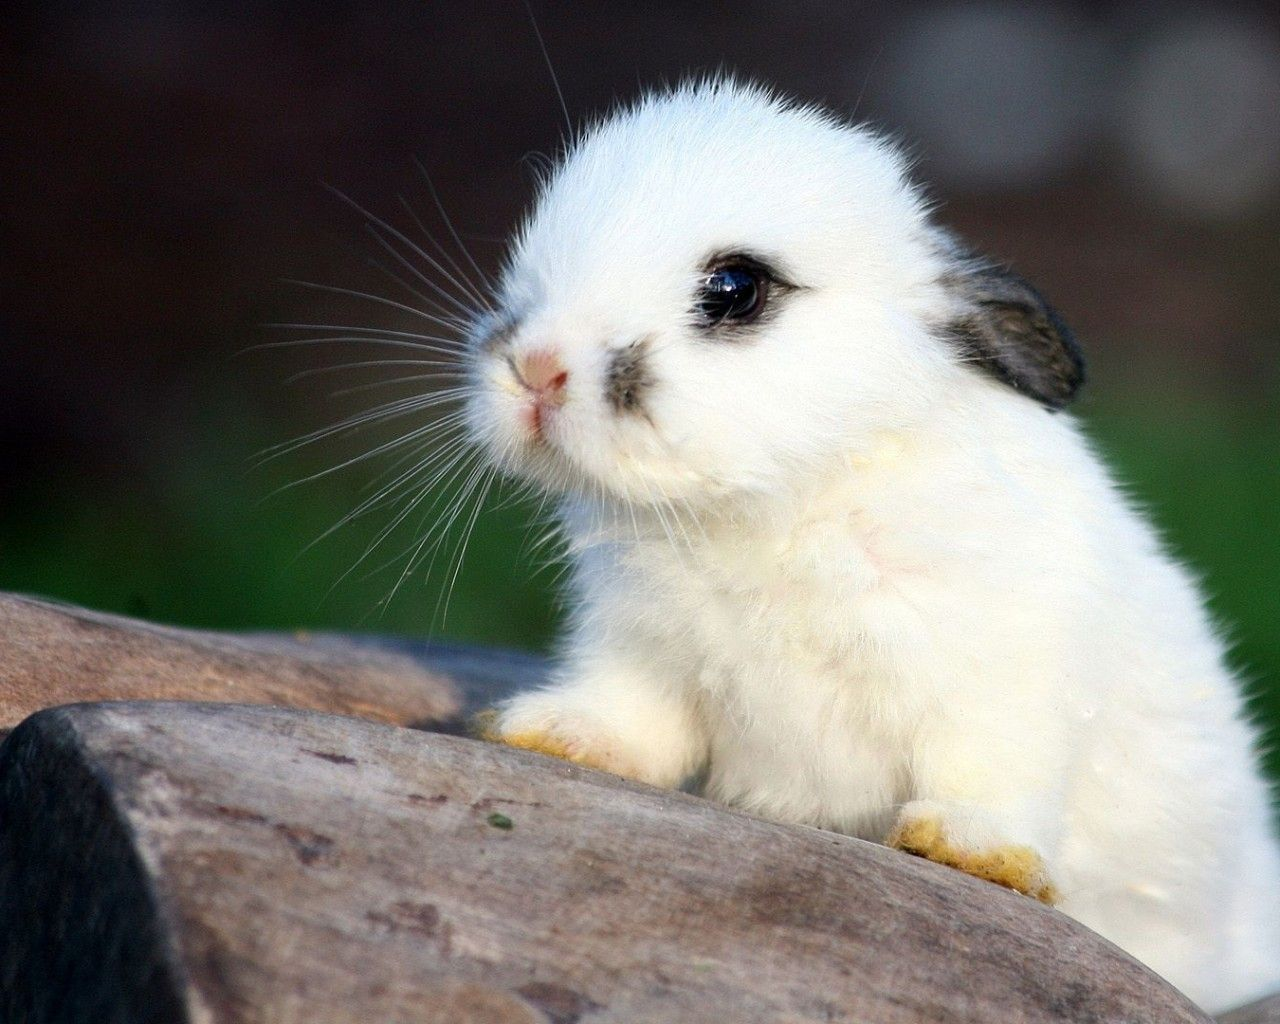 Cute White Baby Bunnies Hd Pictures 4 Hd Wallpapers Lzamgs Com Cute Animals Cute Baby Bunnies Baby Animals